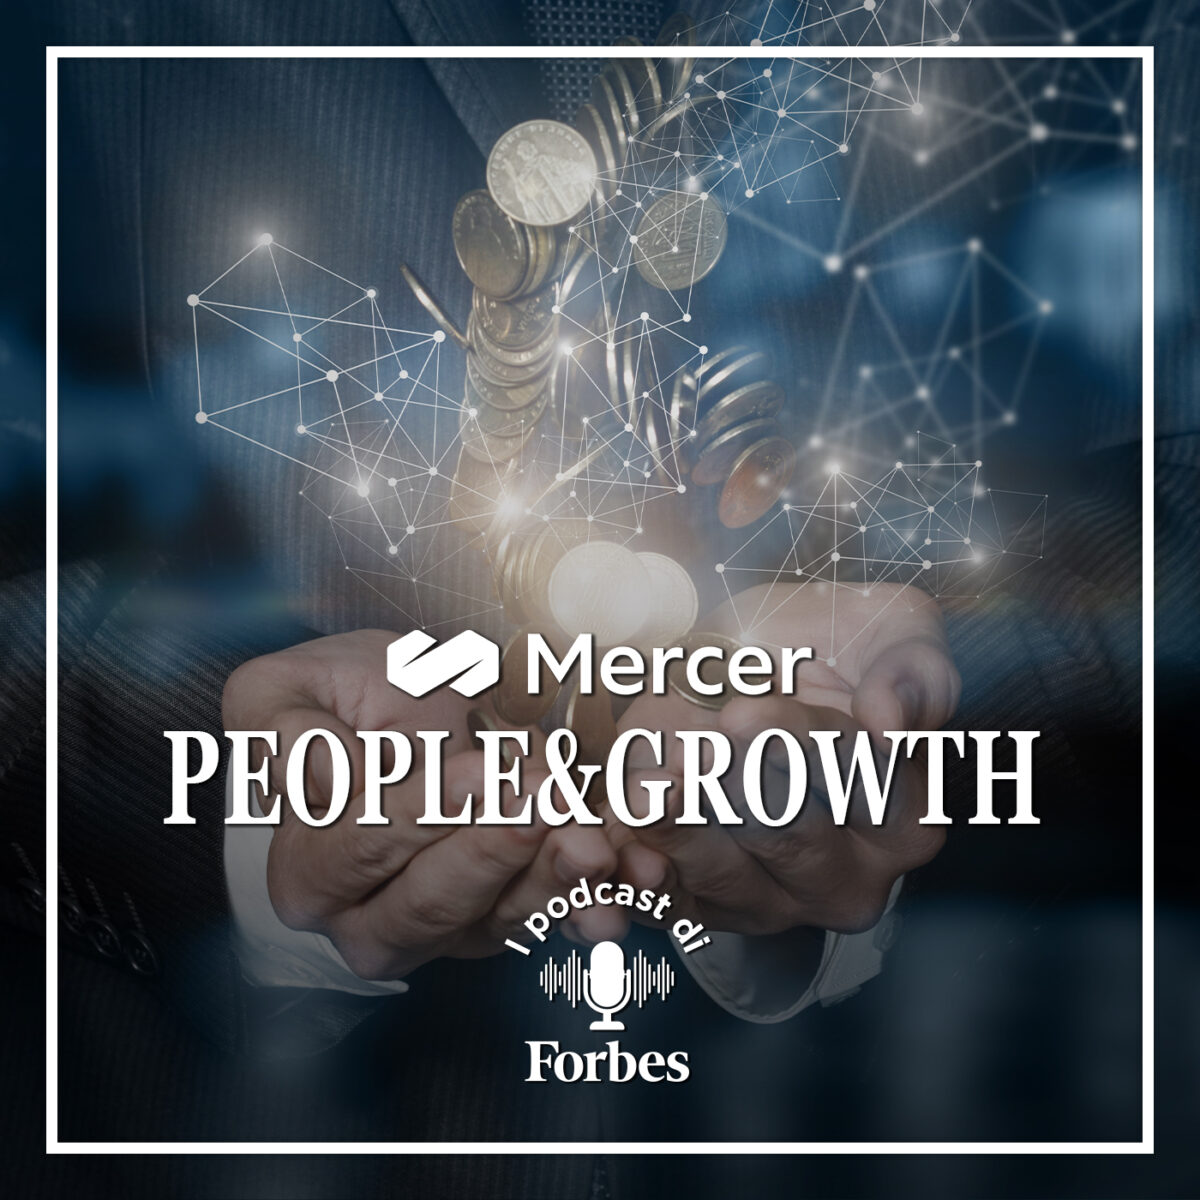 People&Growth